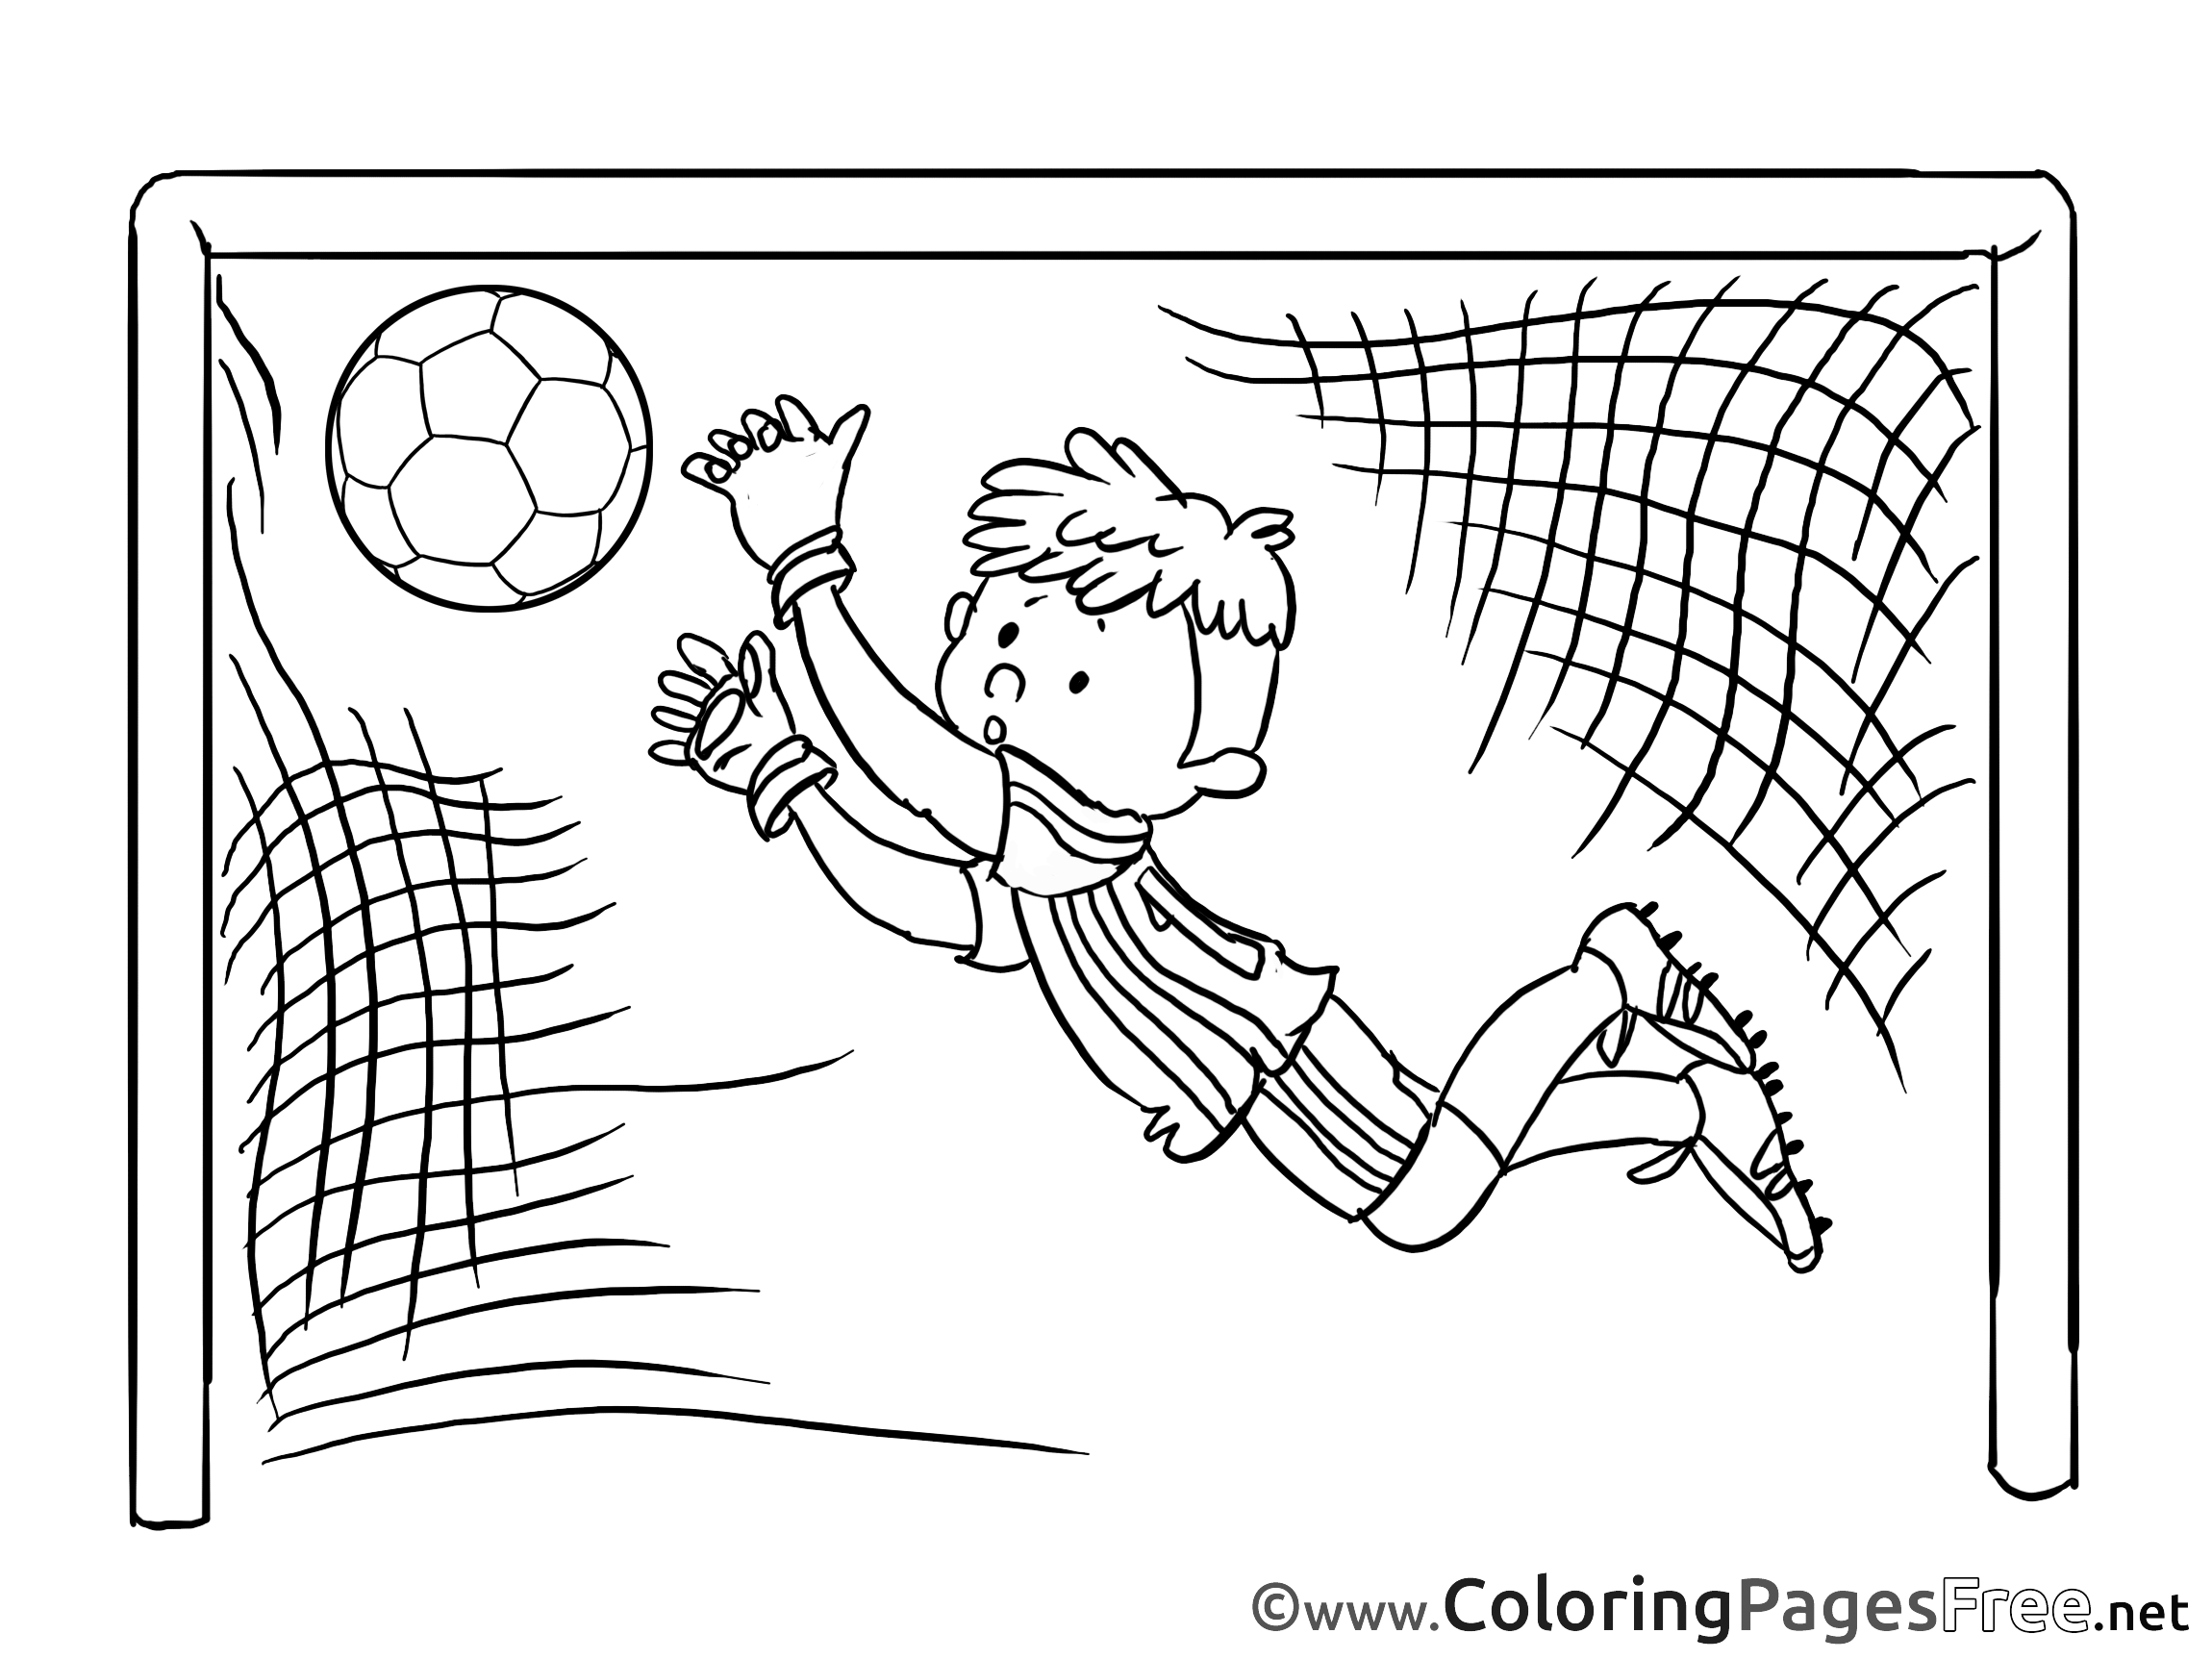 goal goalkeeper soccer free coloring pages